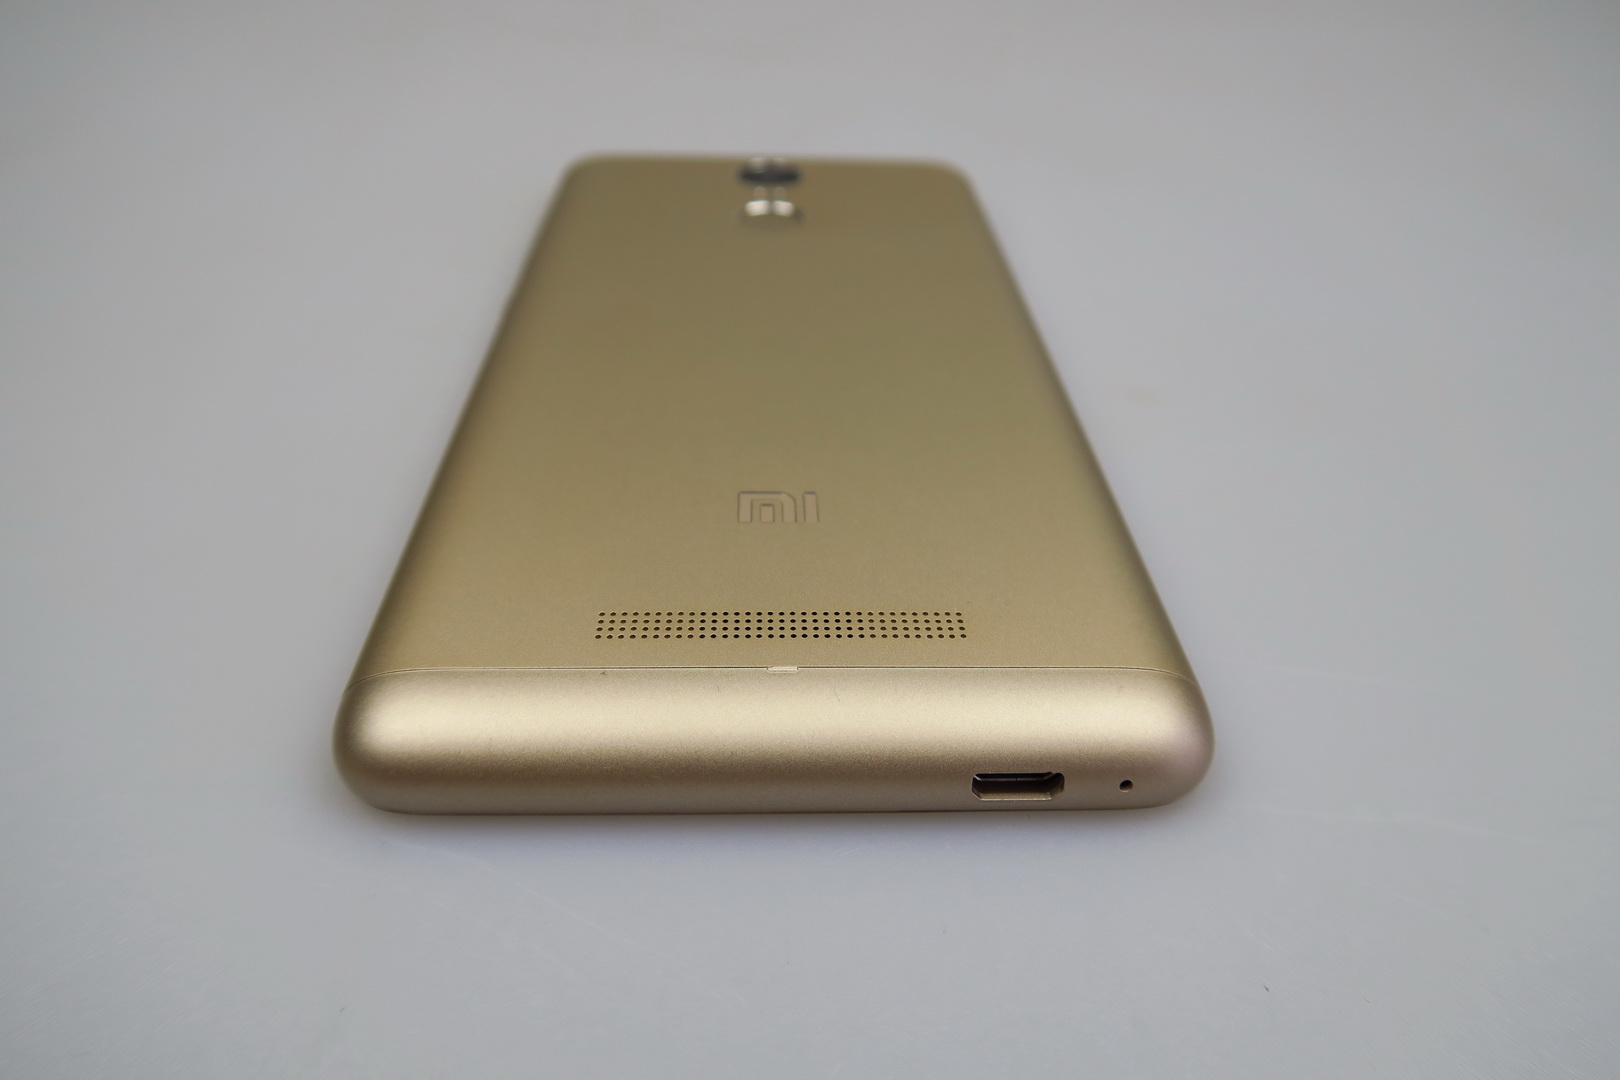 Xiaomi Redmi Note 3 Miui 8 Update Xiaominismes Pro Ram 2 16gb Gold Review May Not Be For